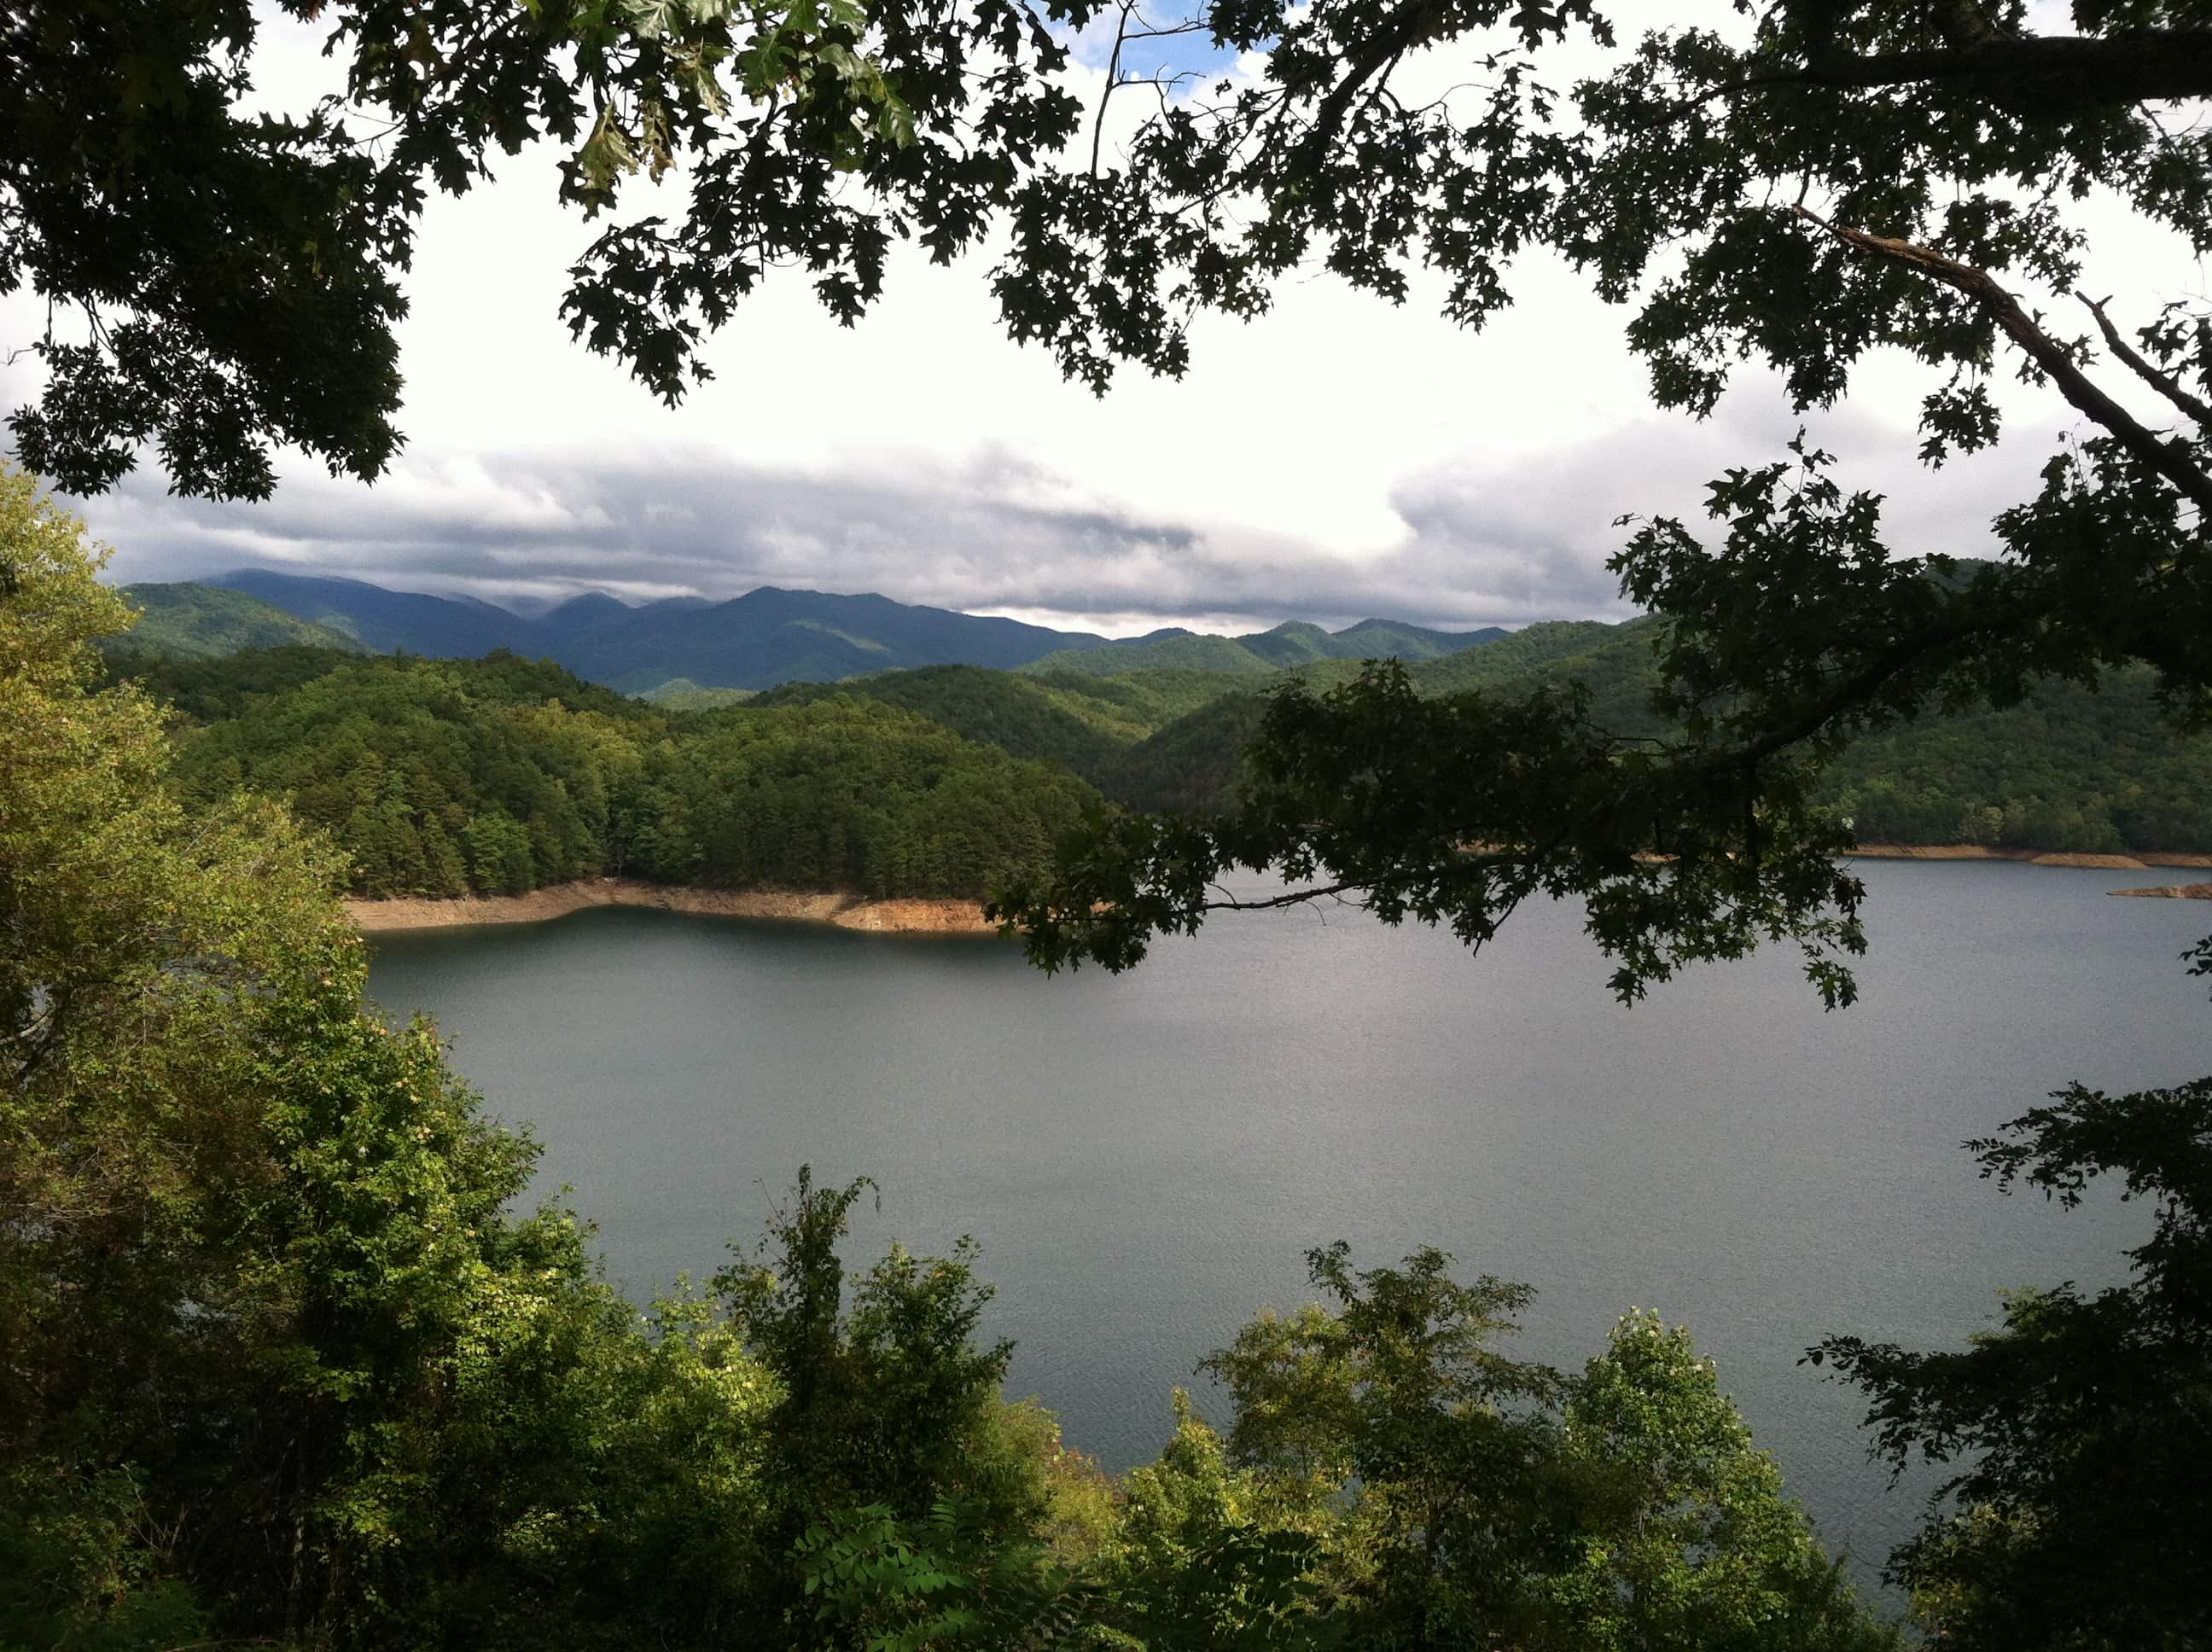 Photograph of Fontana Lake, a reservoir in the Great Smoky Mountains National Park, seen from above, framed by tree branches. In the distance, past the lake, are lush, green mountains.